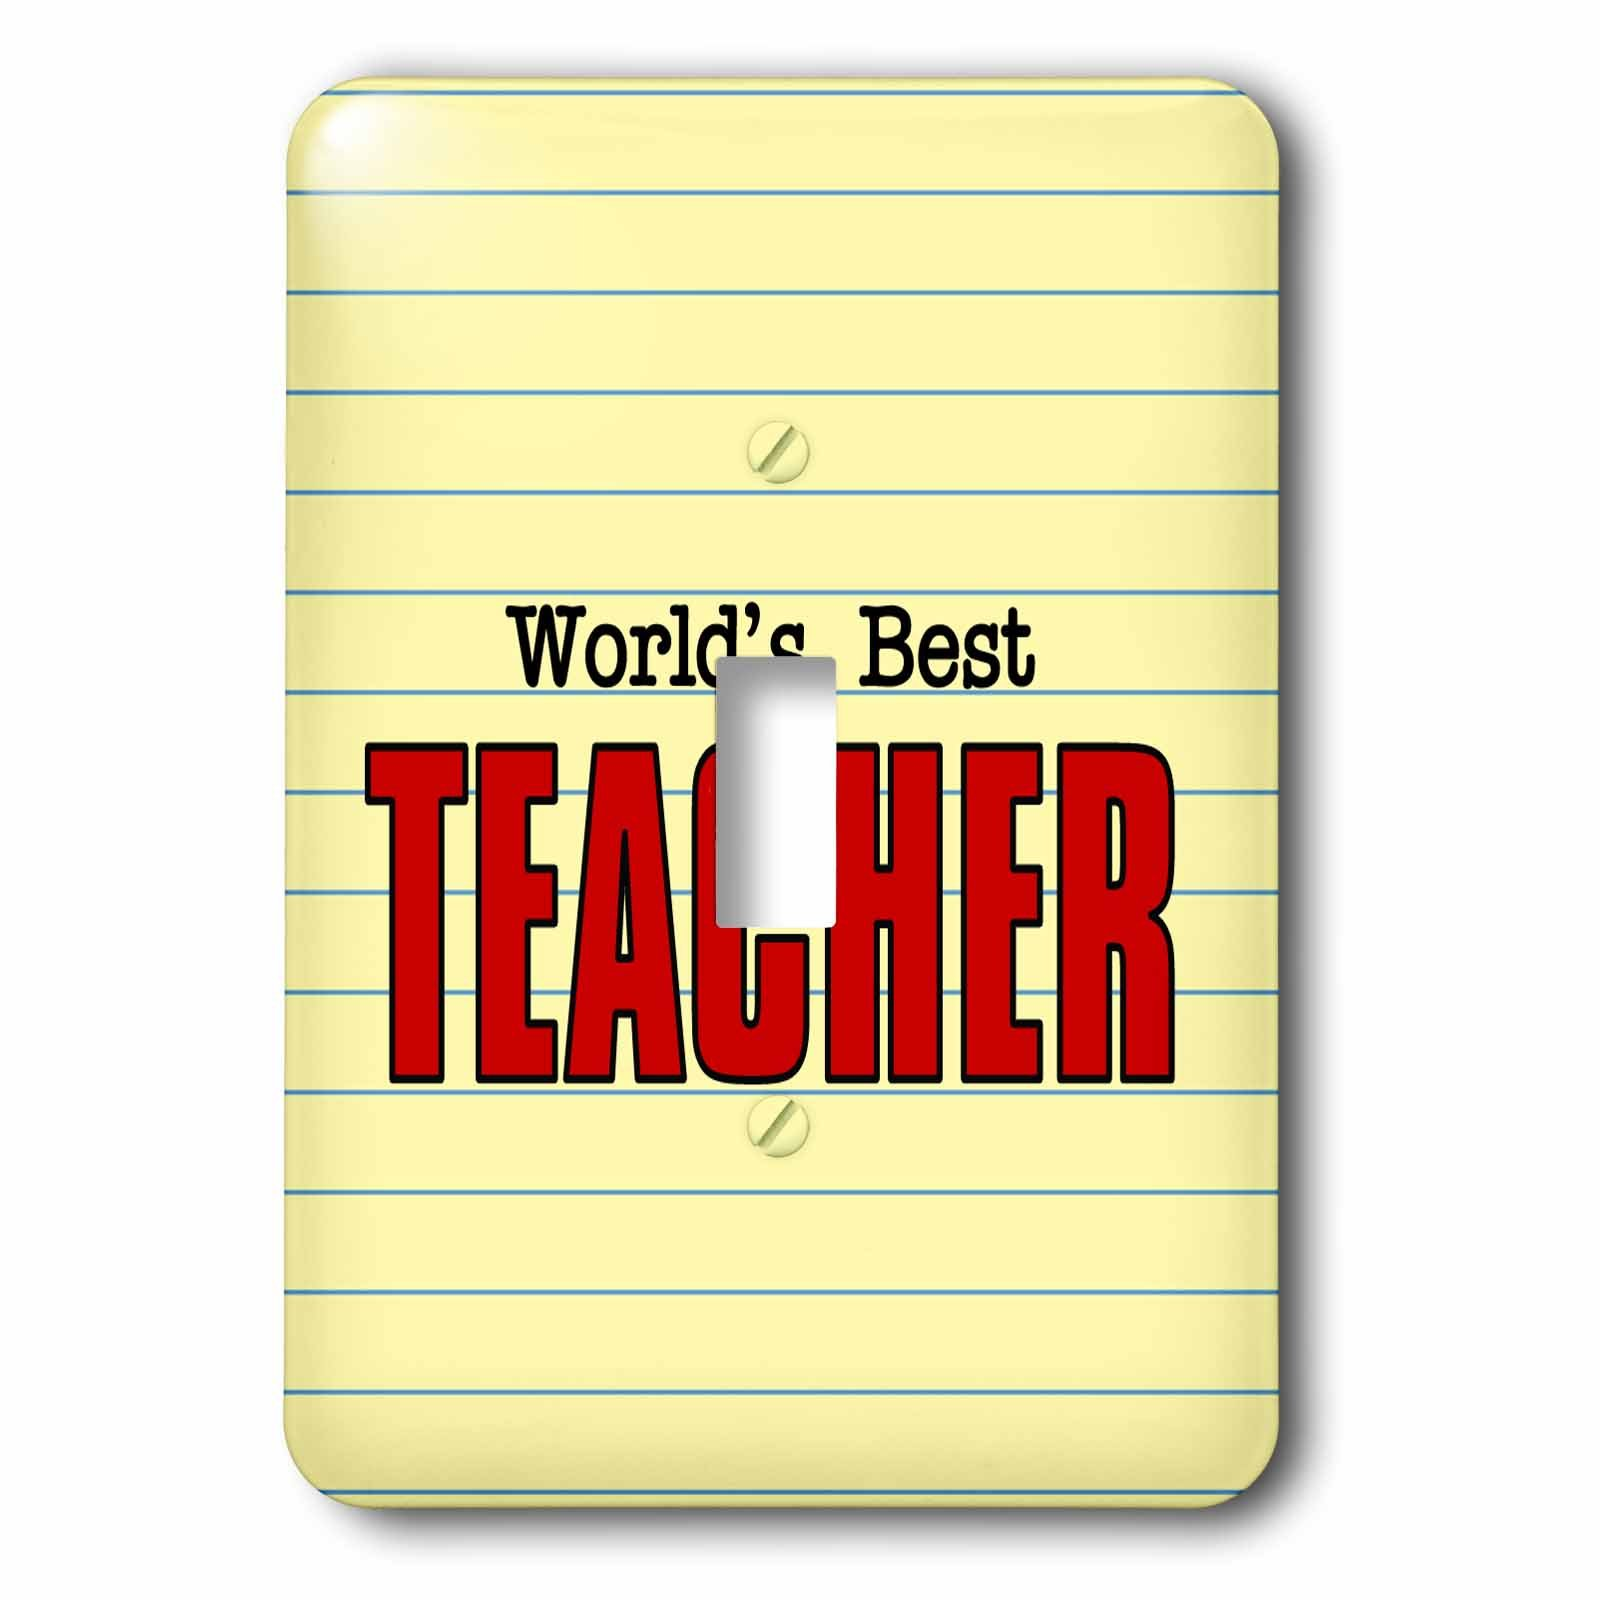 3dRose Doreen Erhardt Occupation Collection - Worlds Best Teacher in Red and Black Word Art with Yellow School Paper - Light Switch Covers - single toggle switch (lsp_283480_1)